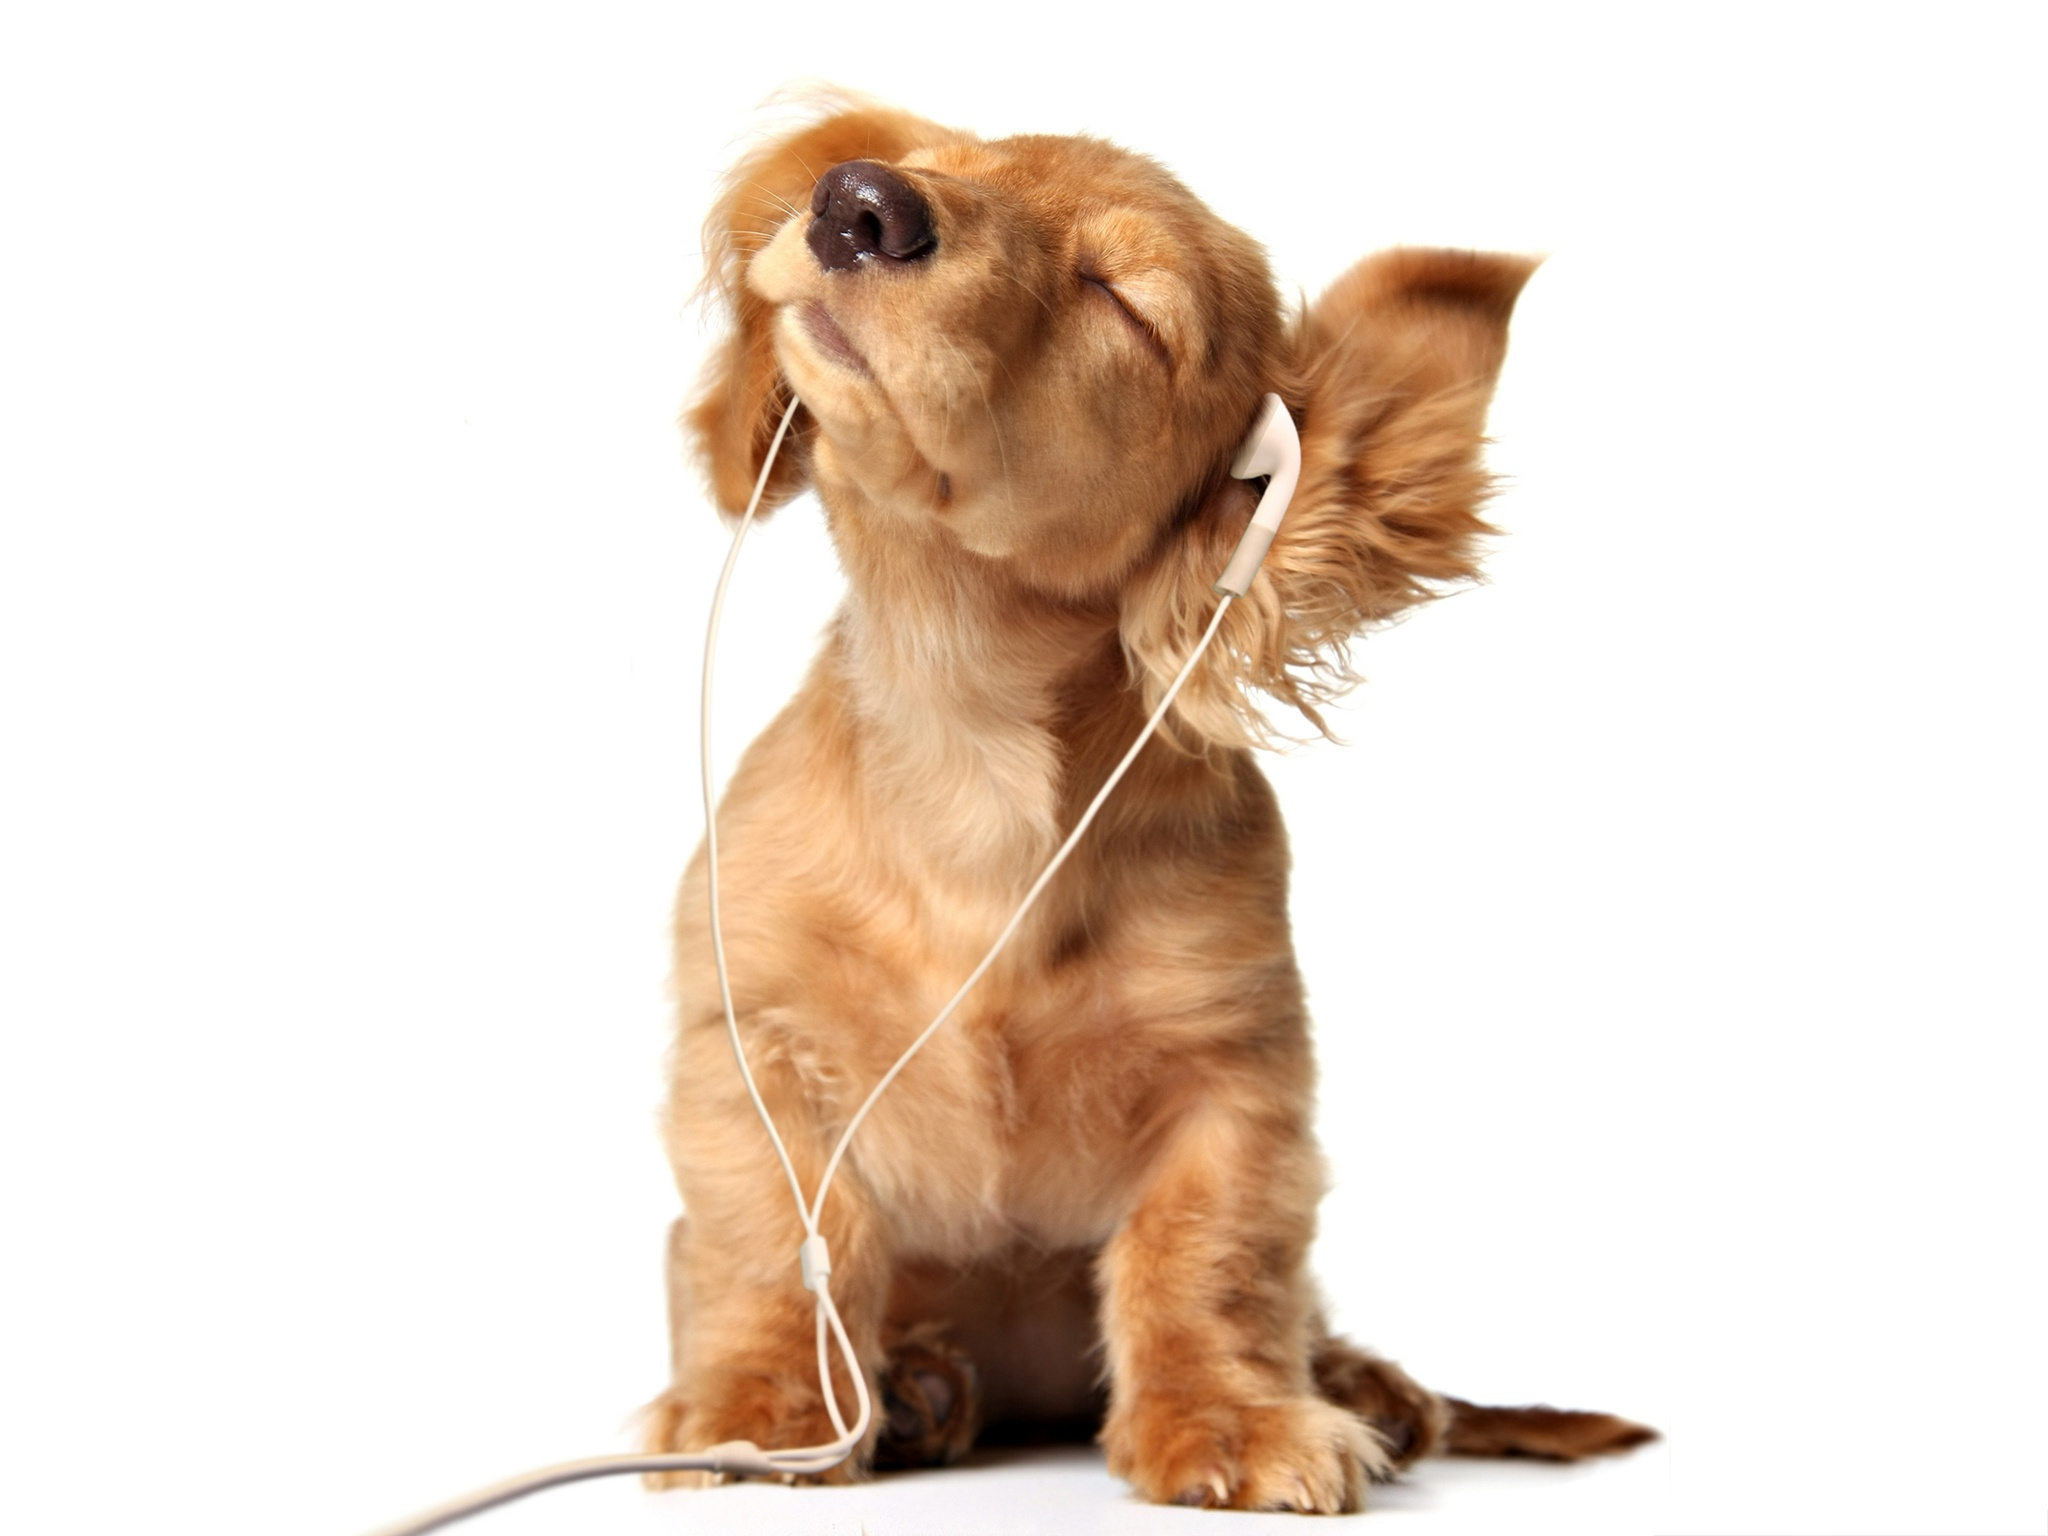 click to free download the wallpaper--Funny Puppy Image, Dog in Earphone, Going to Shake Your Body? 2048X1536 free wallpaper download